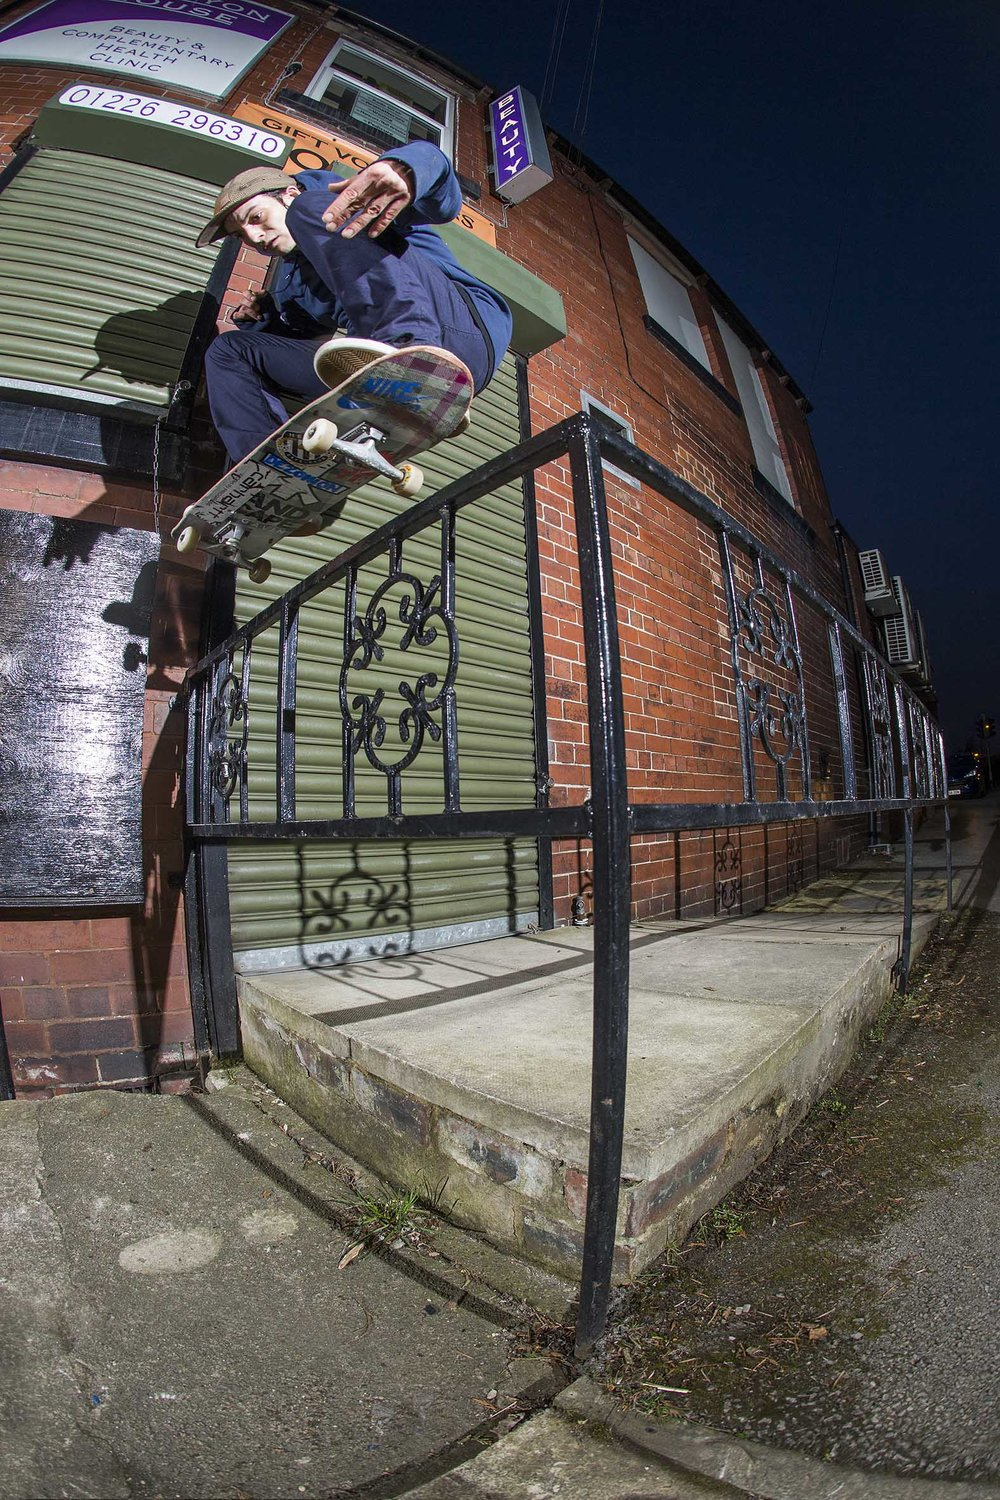 Joe Gavin - nollie shifty